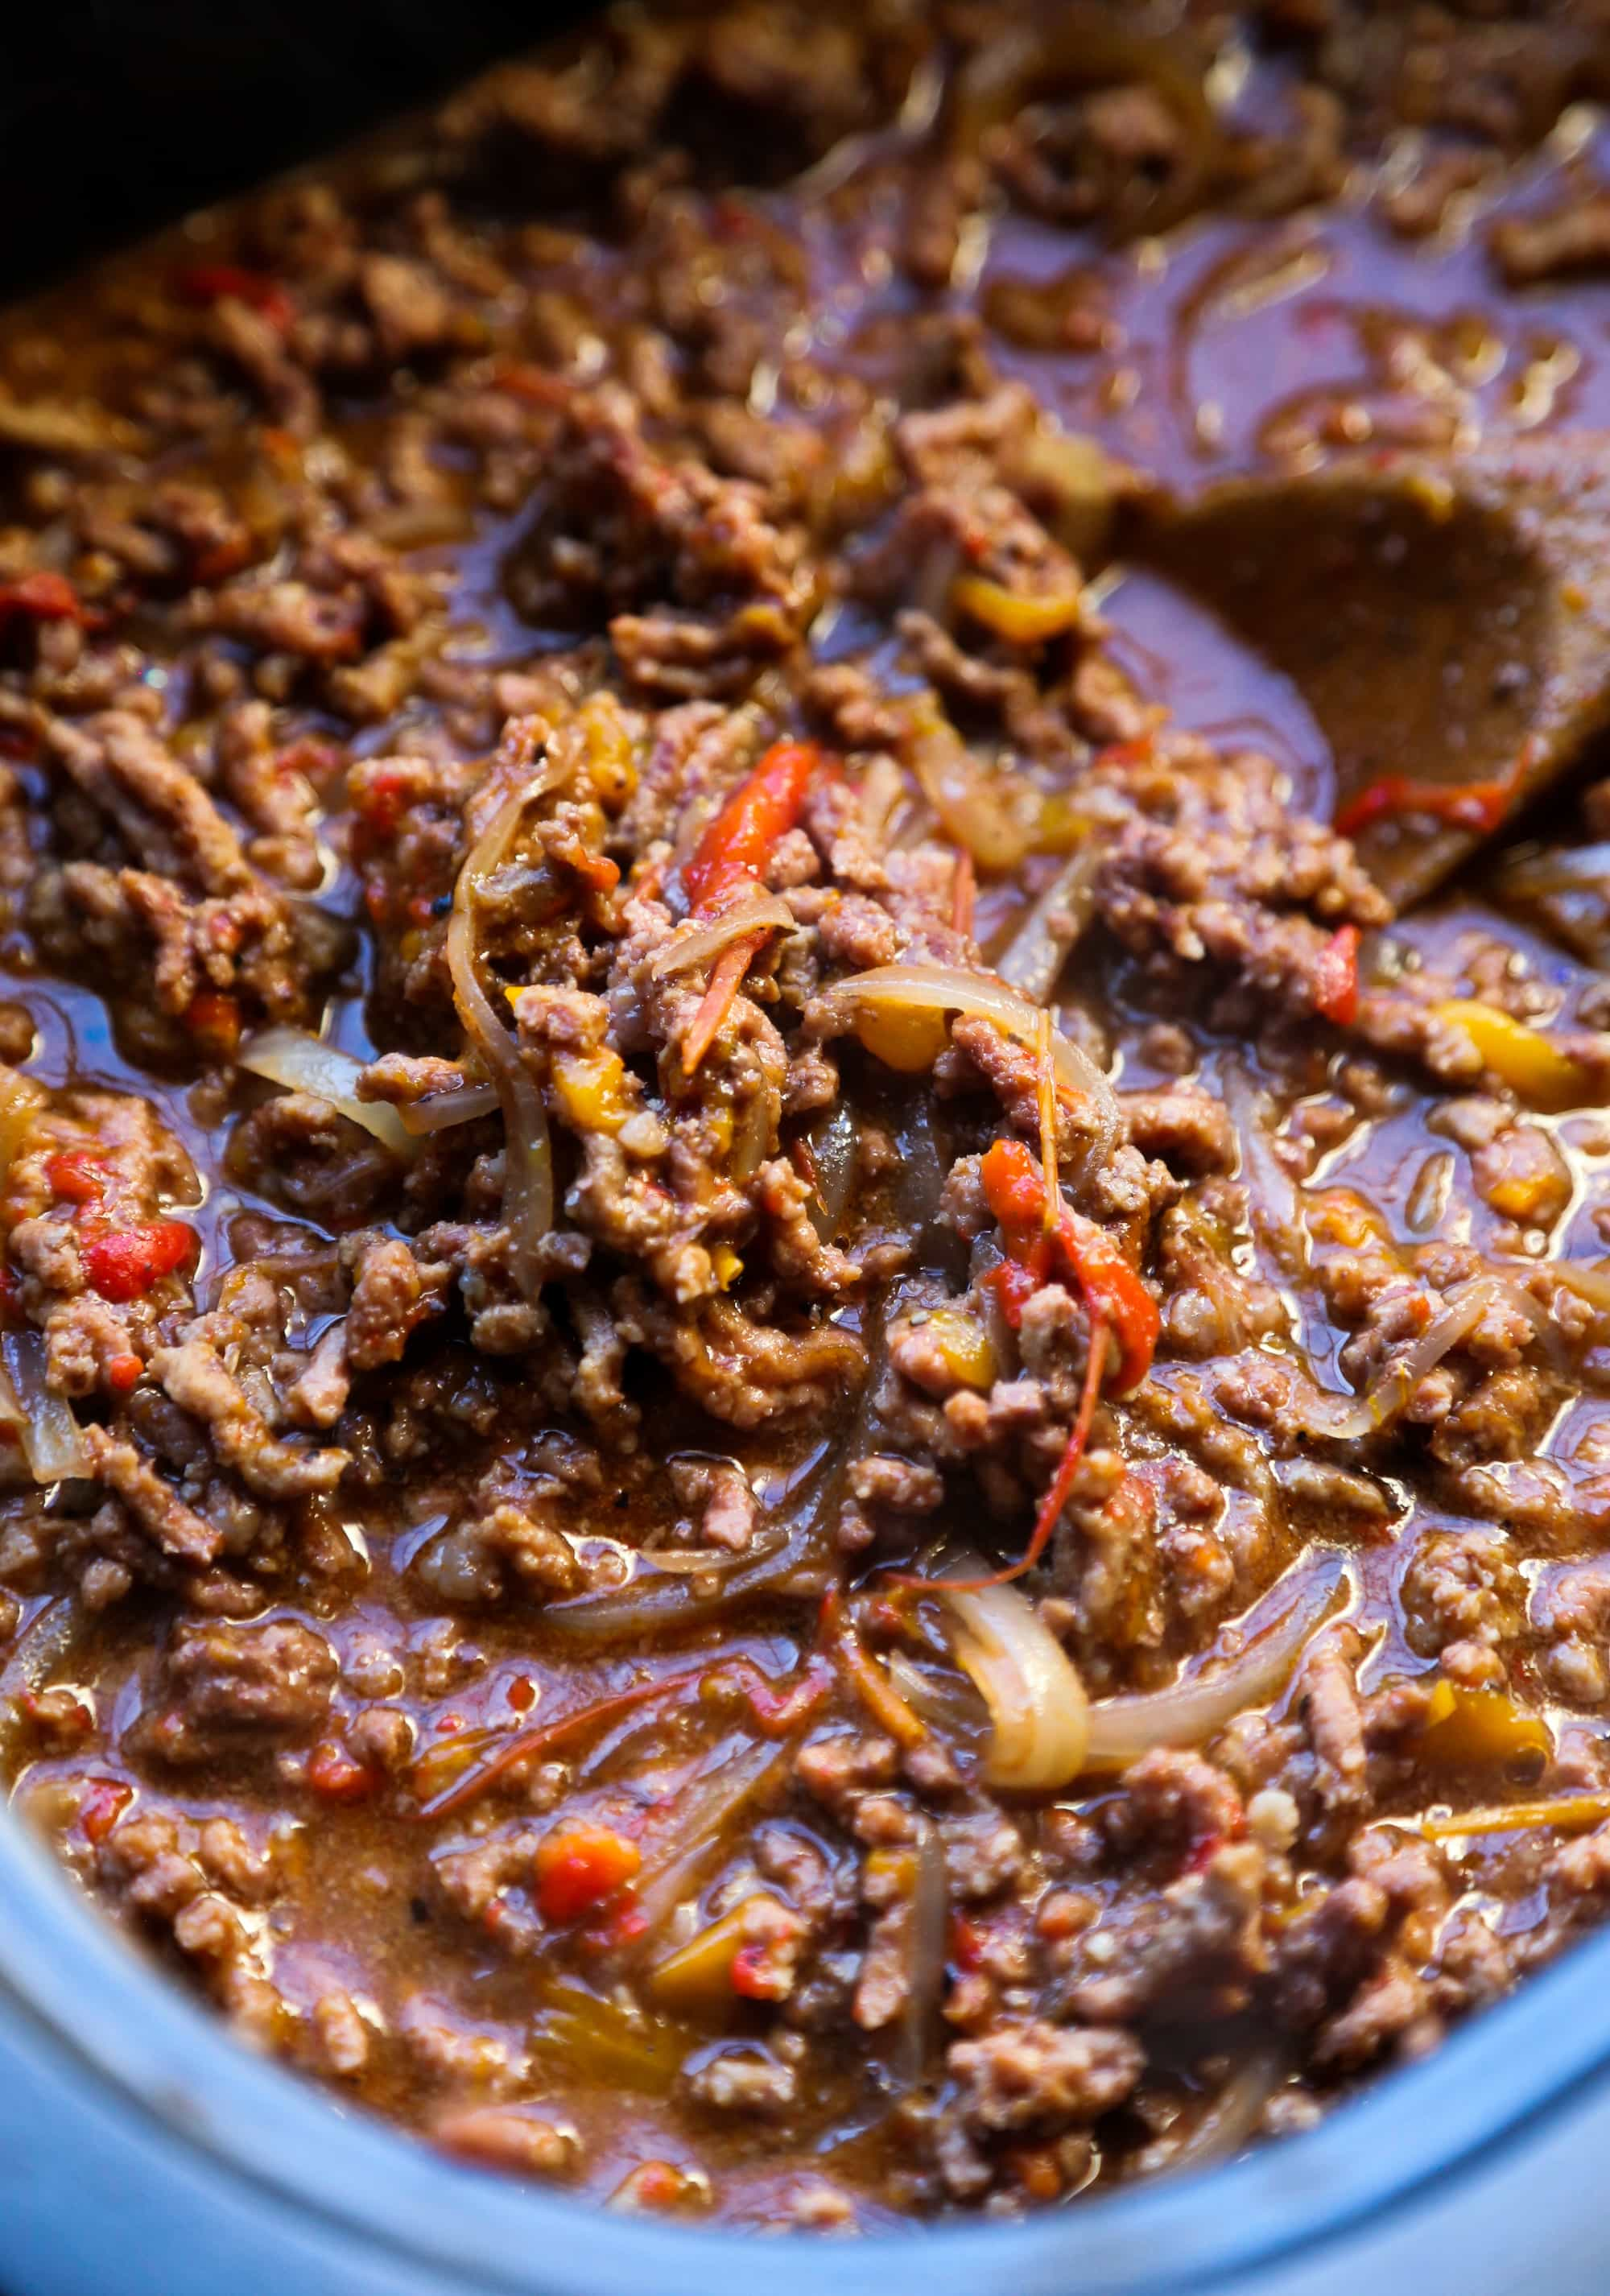 Slow Cooker Philly Cheesesteak Sloppy Joe recipe! Super easy and great for feeding a crowd!